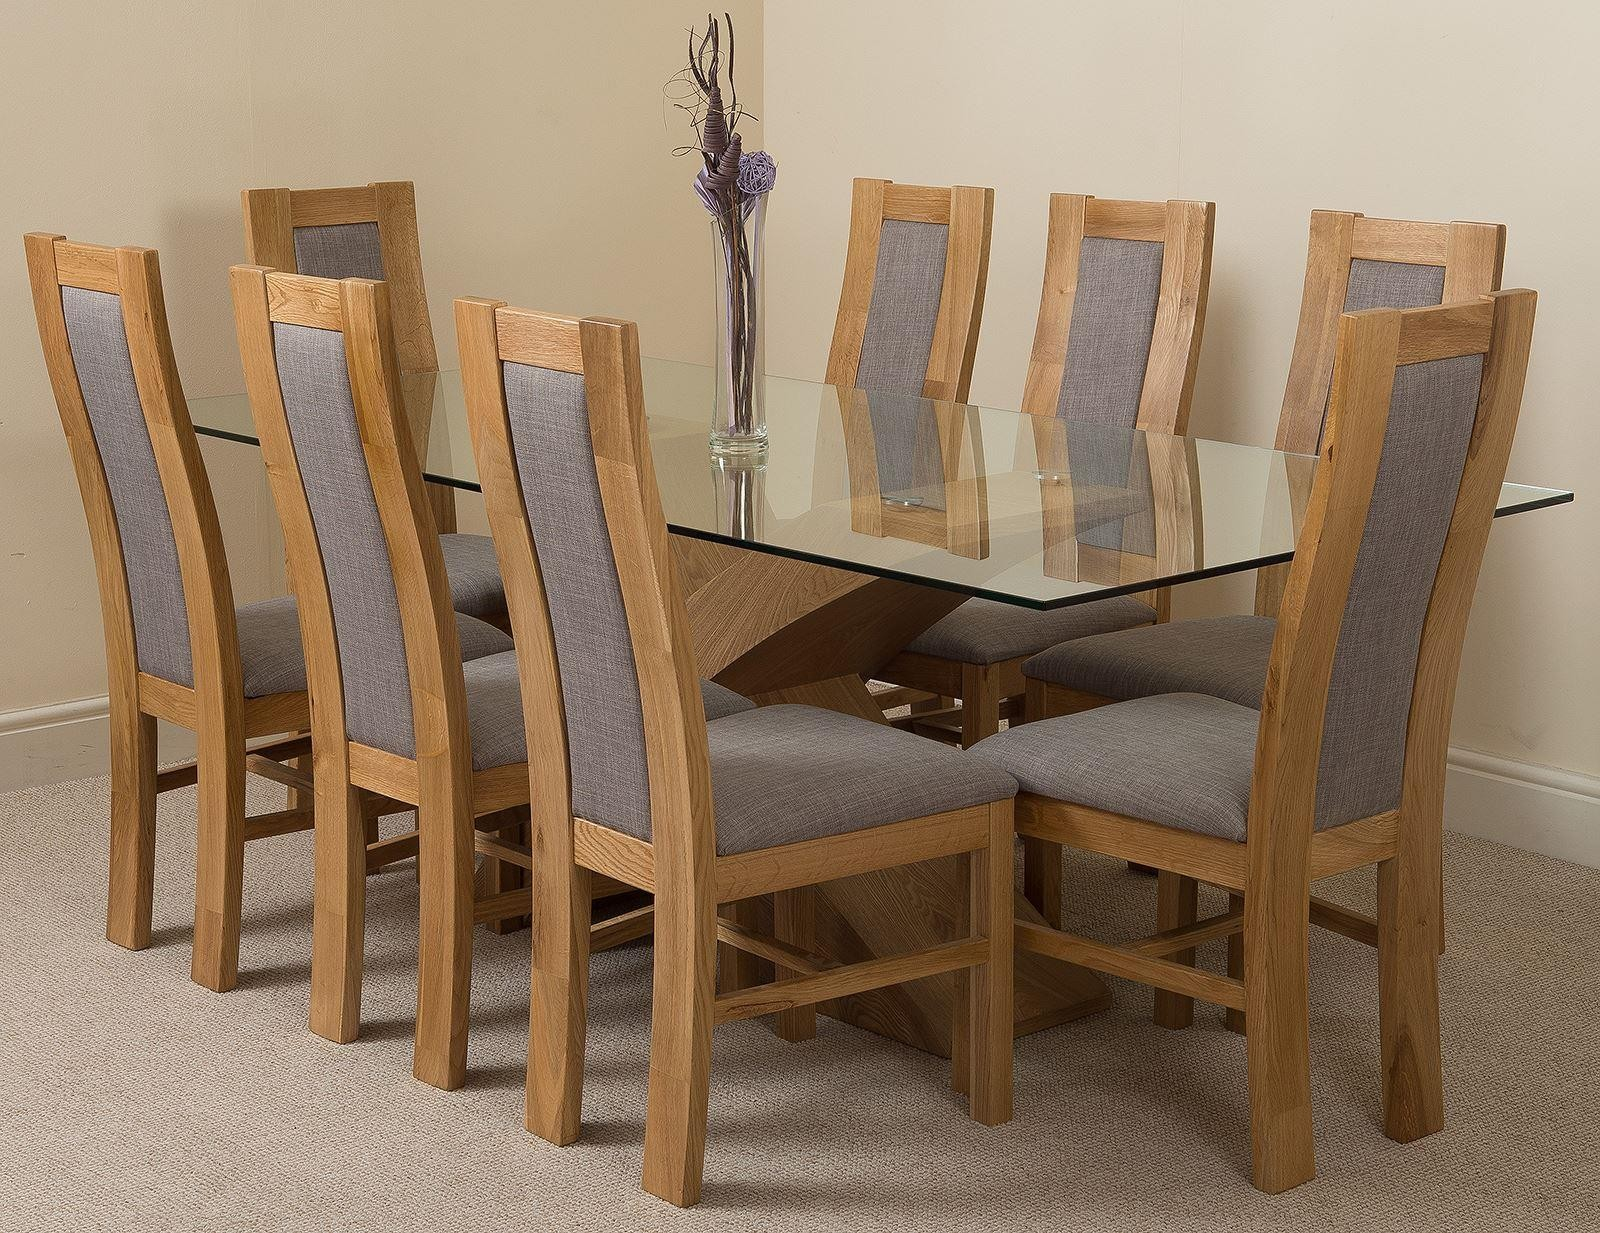 Valencia Oak 200cm Wood And Glass Dining Table With 8 Stanford Solid Oak Dining Chairs Light Oak And Grey Fabric Collections